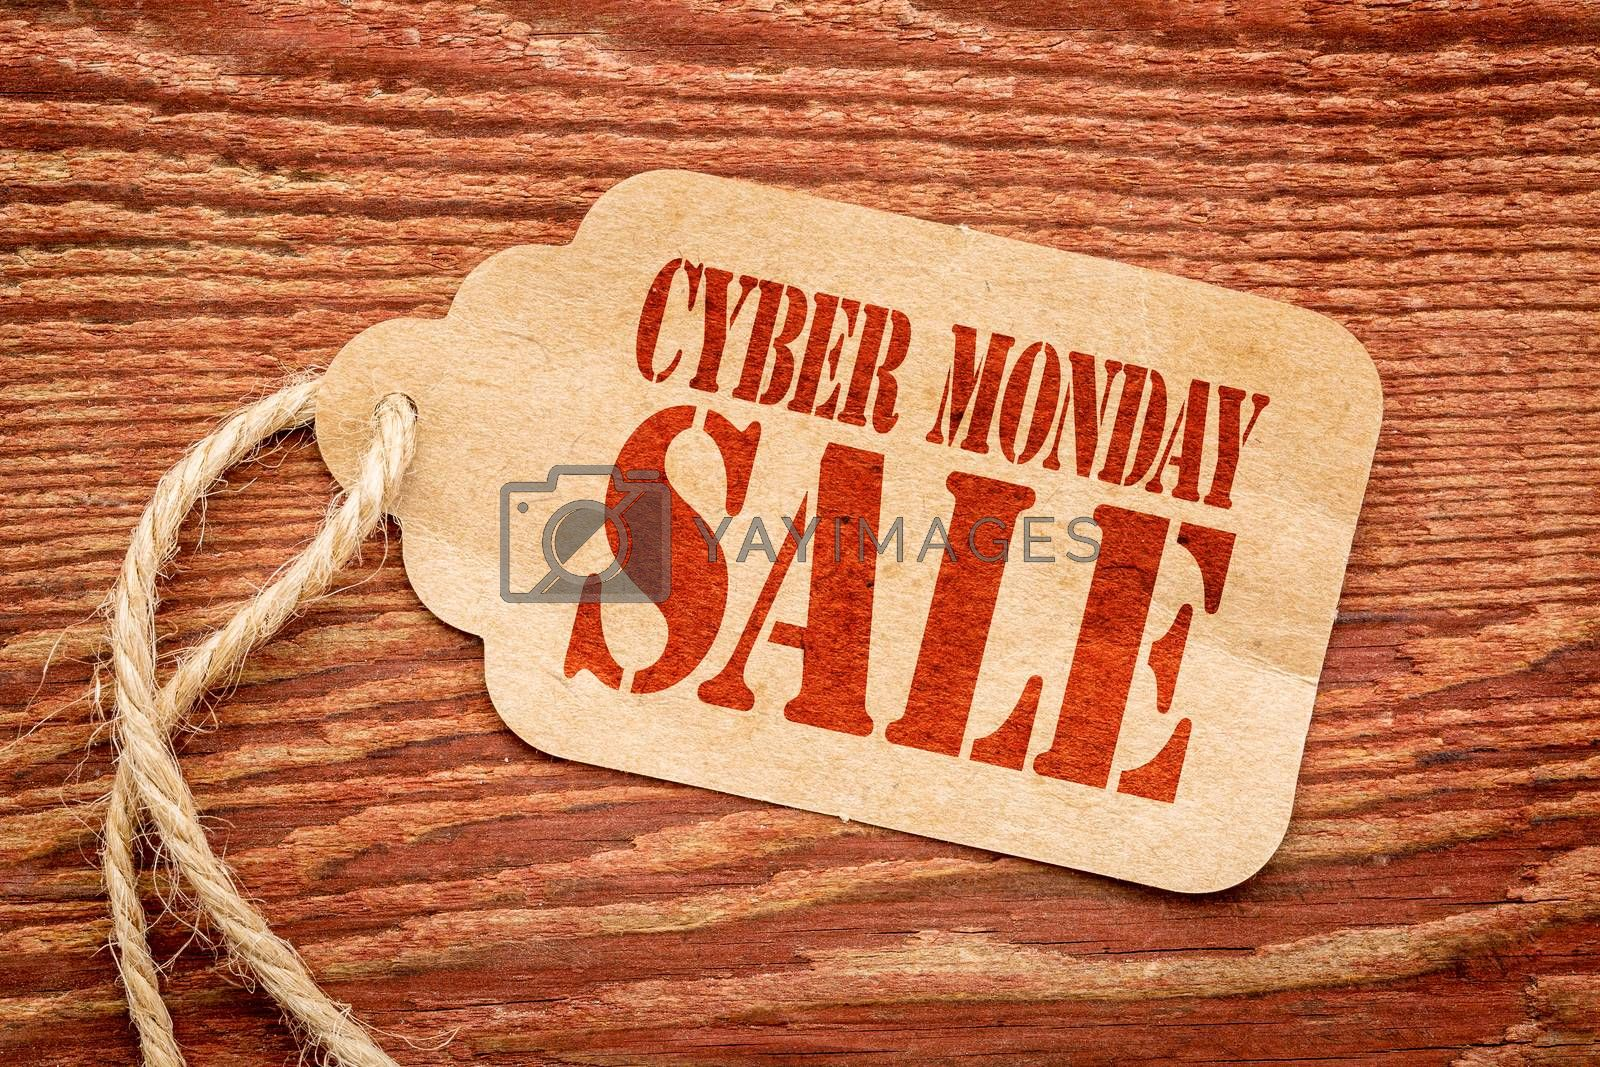 Cyber Monday  sale sign a paper price tag against rustic red painted barn wood